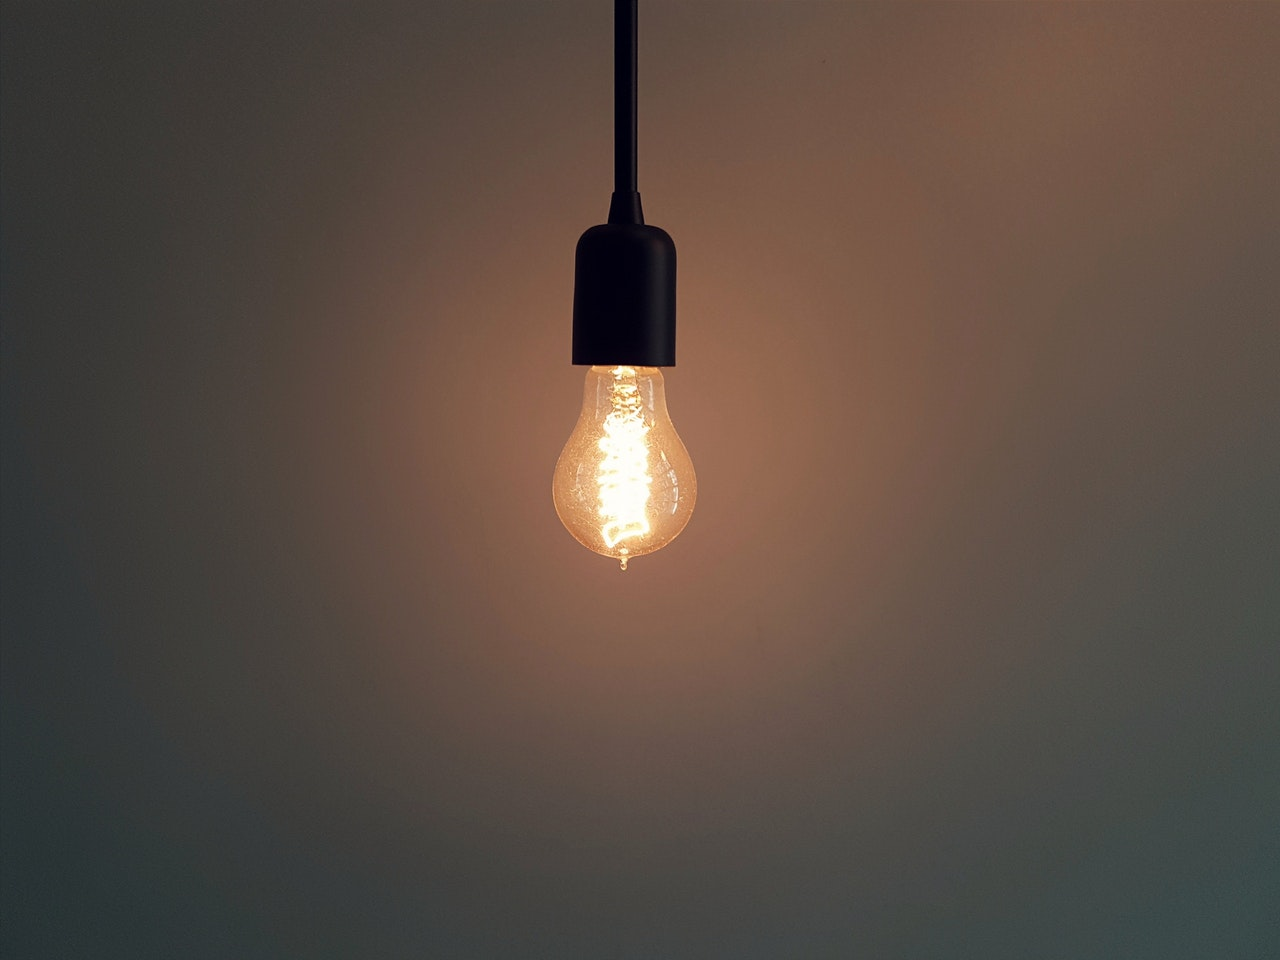 Change of mindset lightbulb